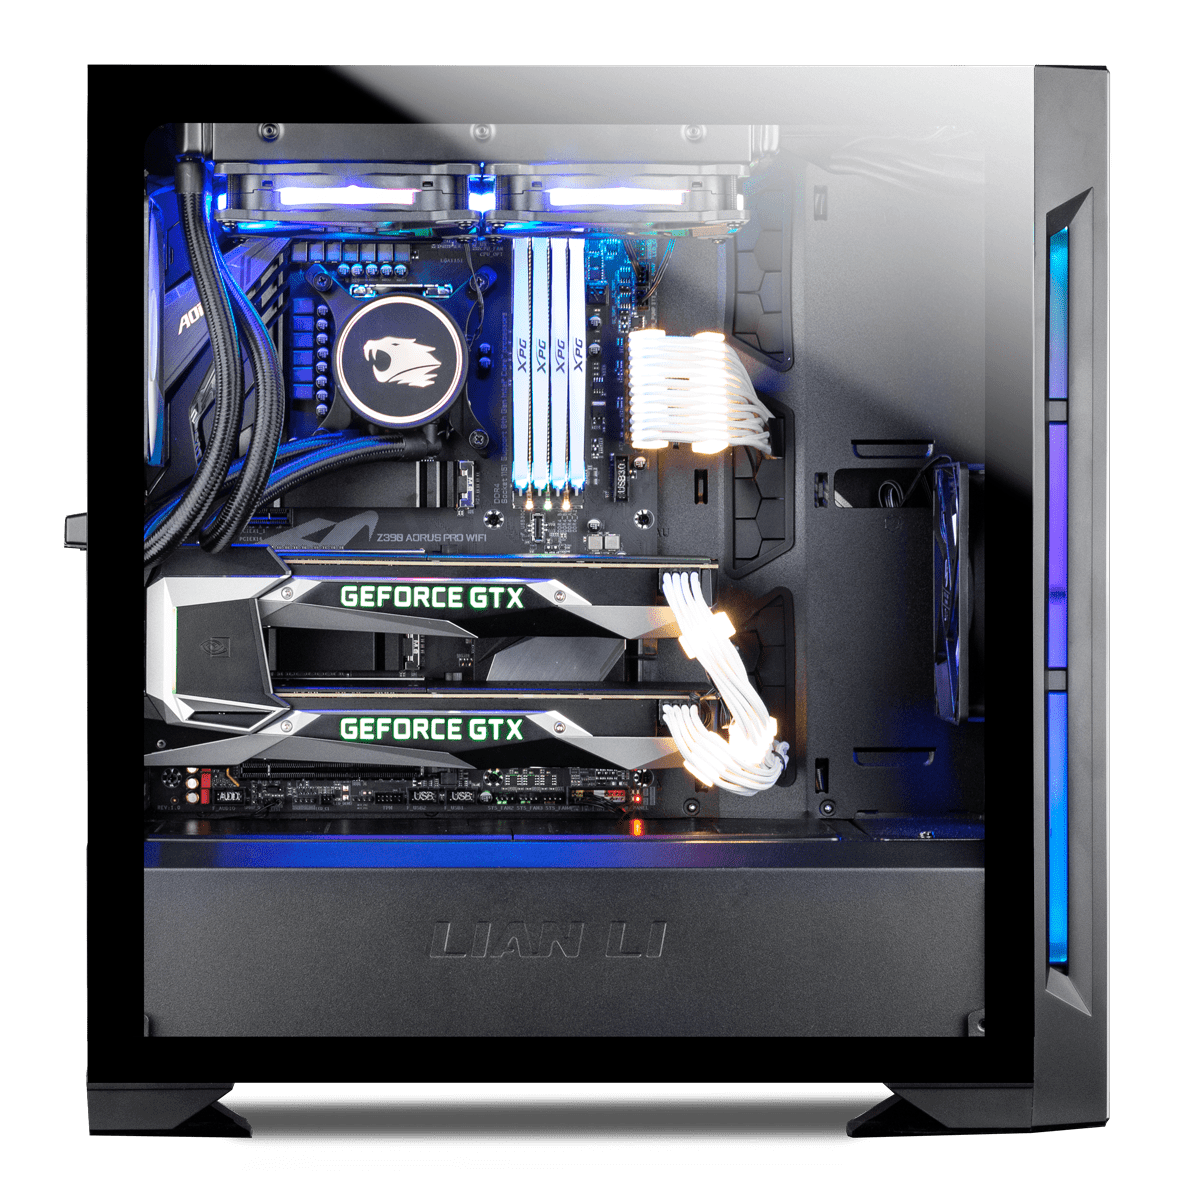 ASROCK H55 PRO LAN TREIBER WINDOWS 7